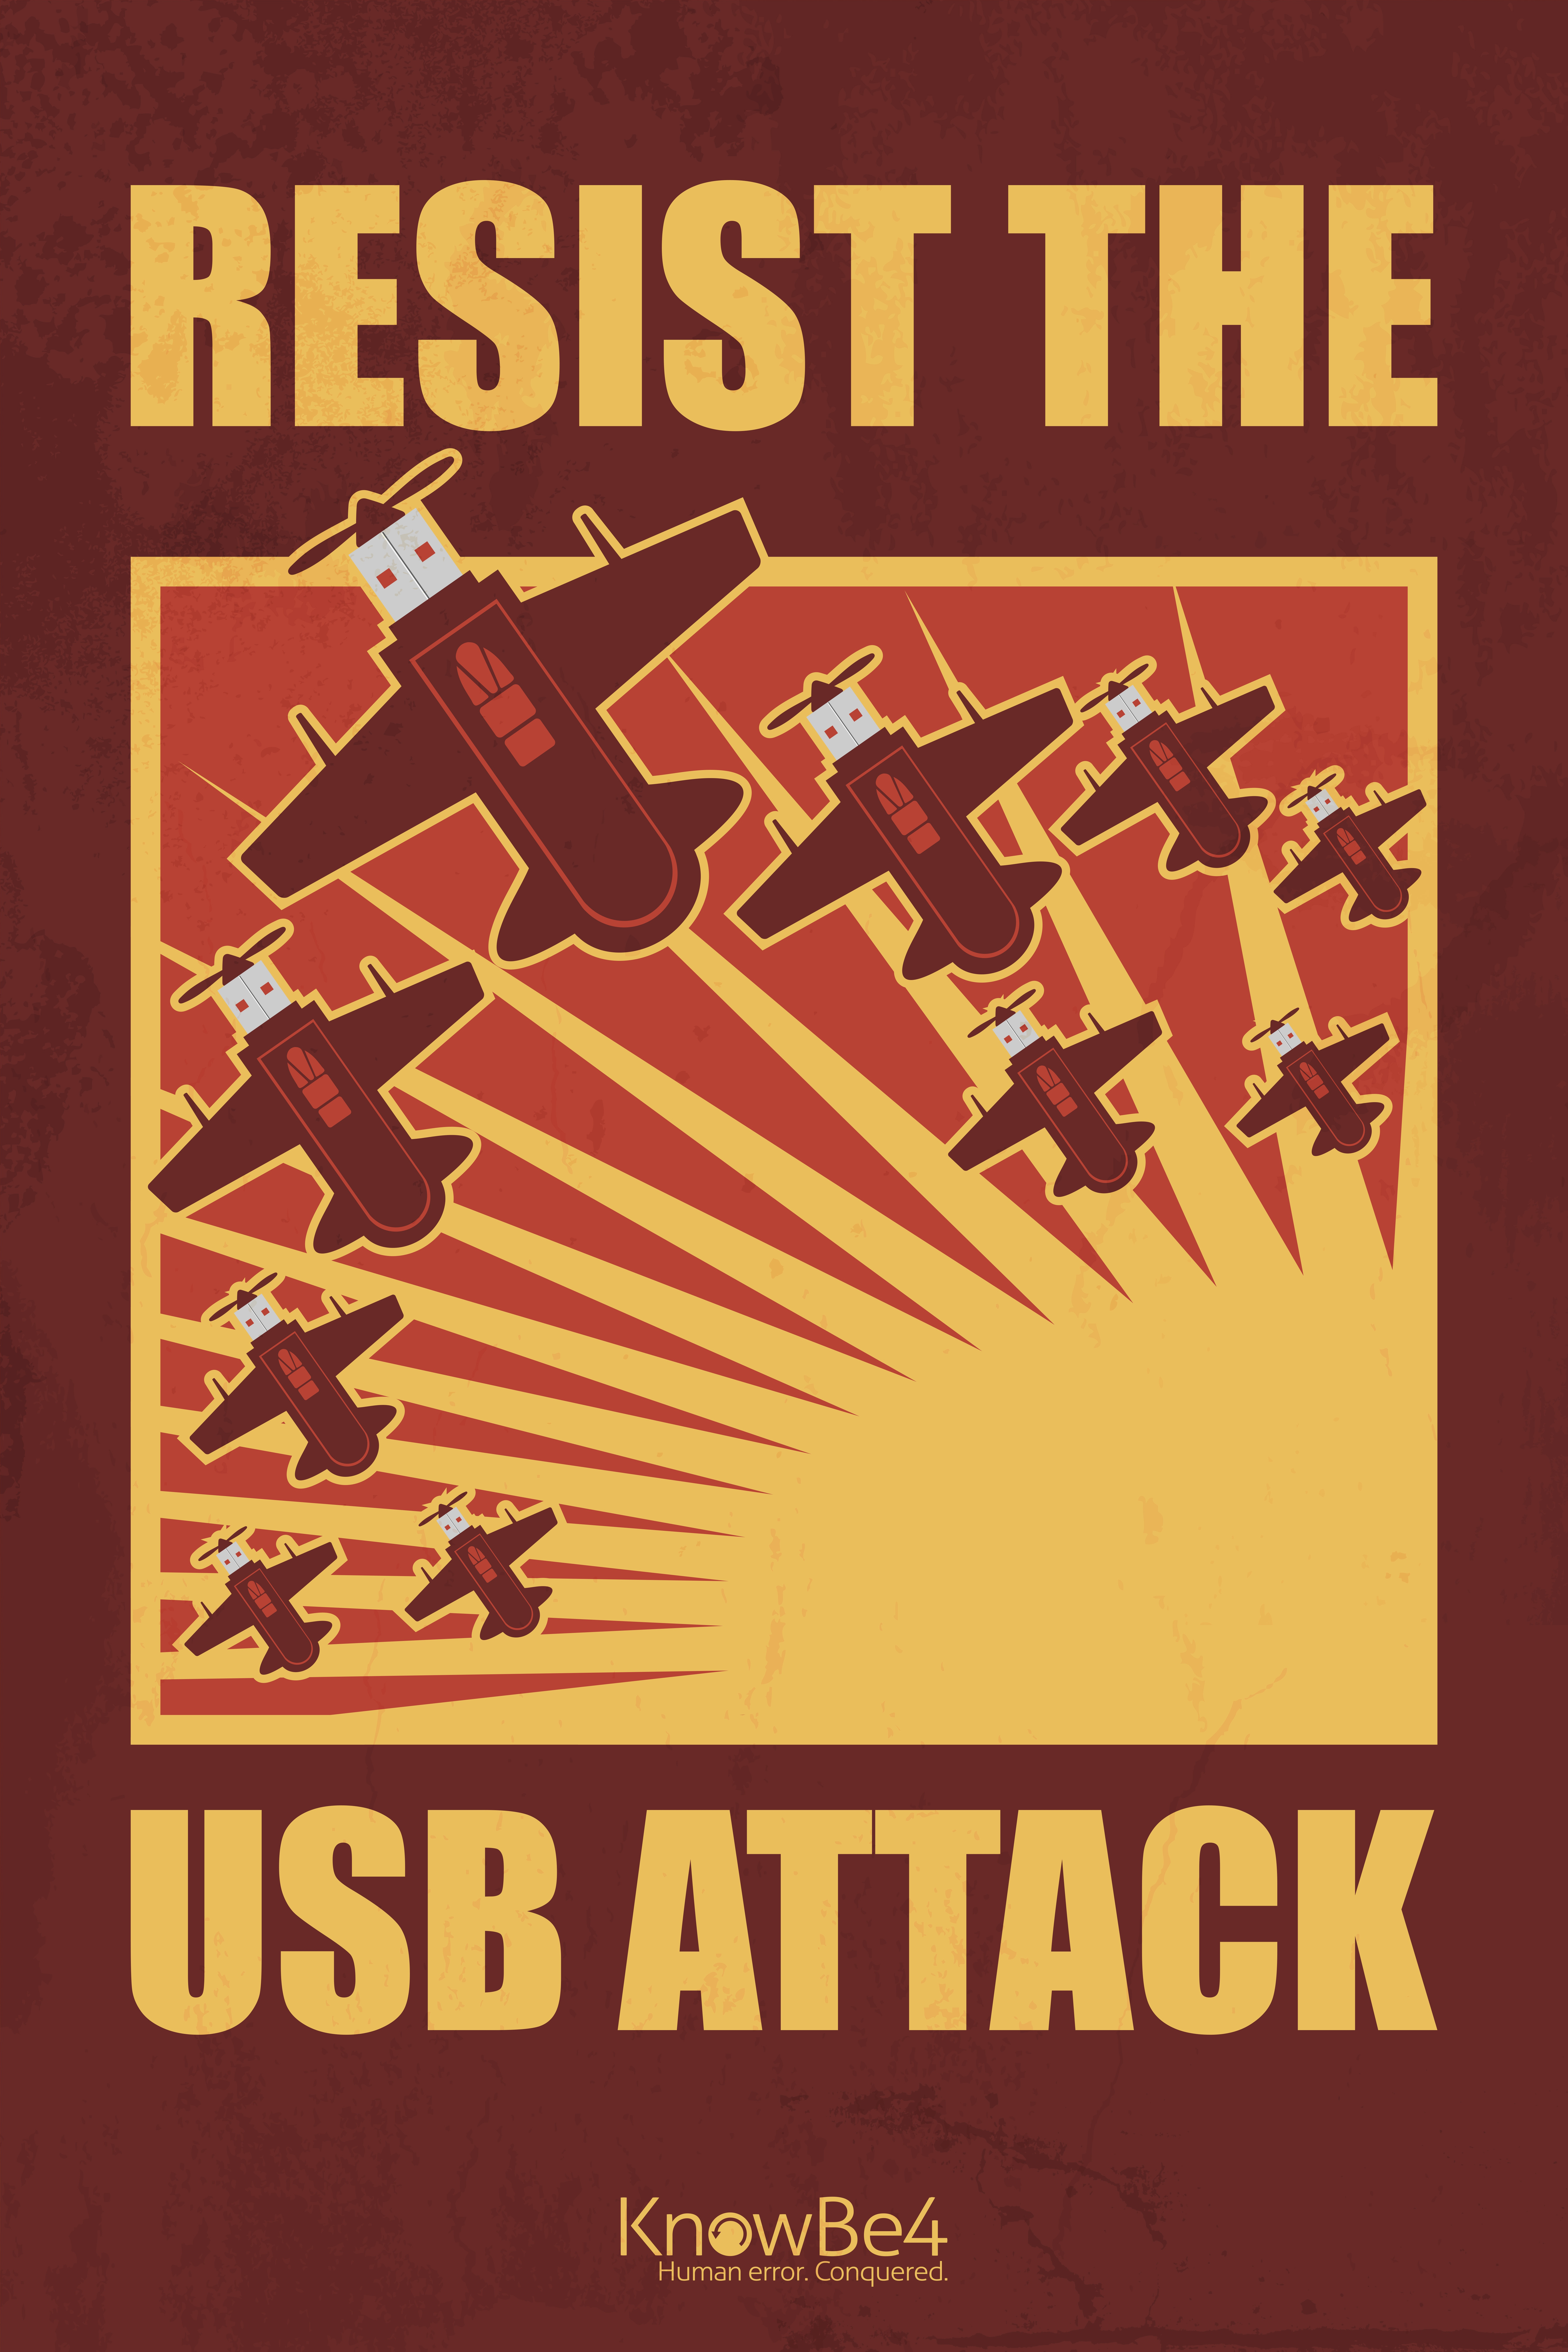 Resist the USB Attack